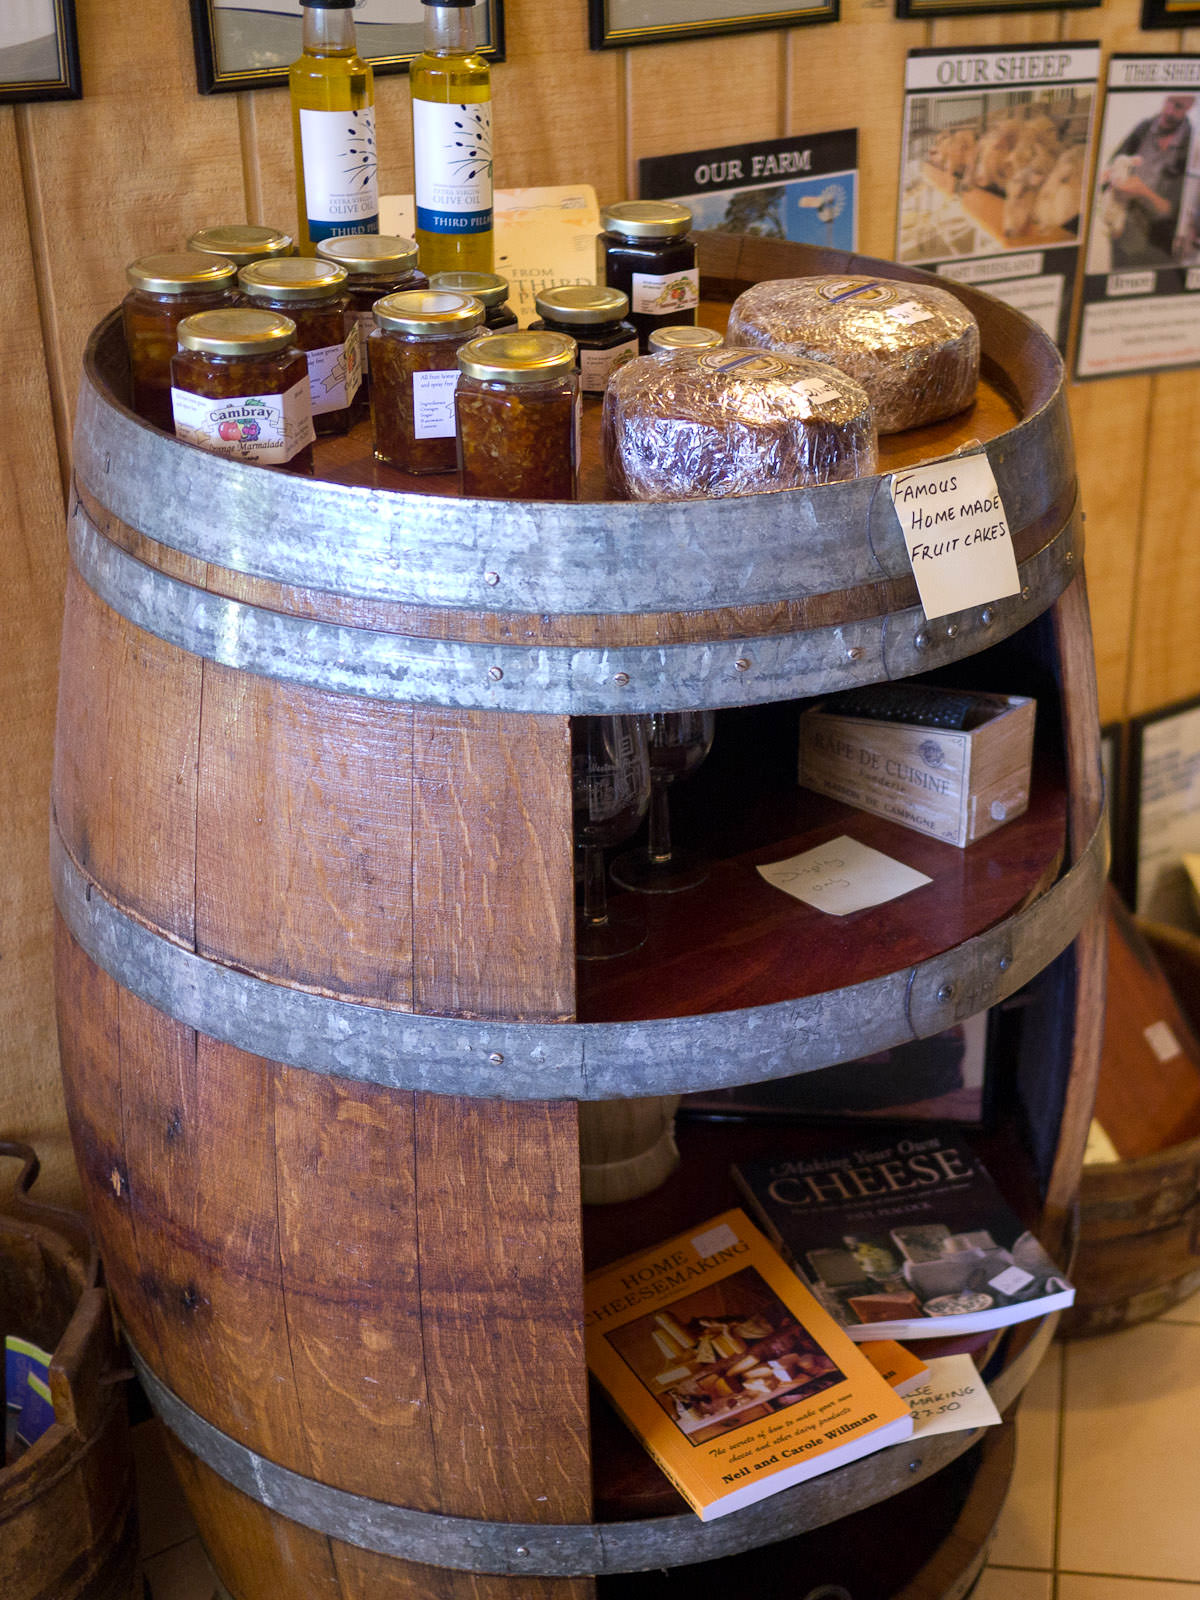 Barrel of goodies - local olive oil, preserves, famous homemade fruit cakes and books about cheese